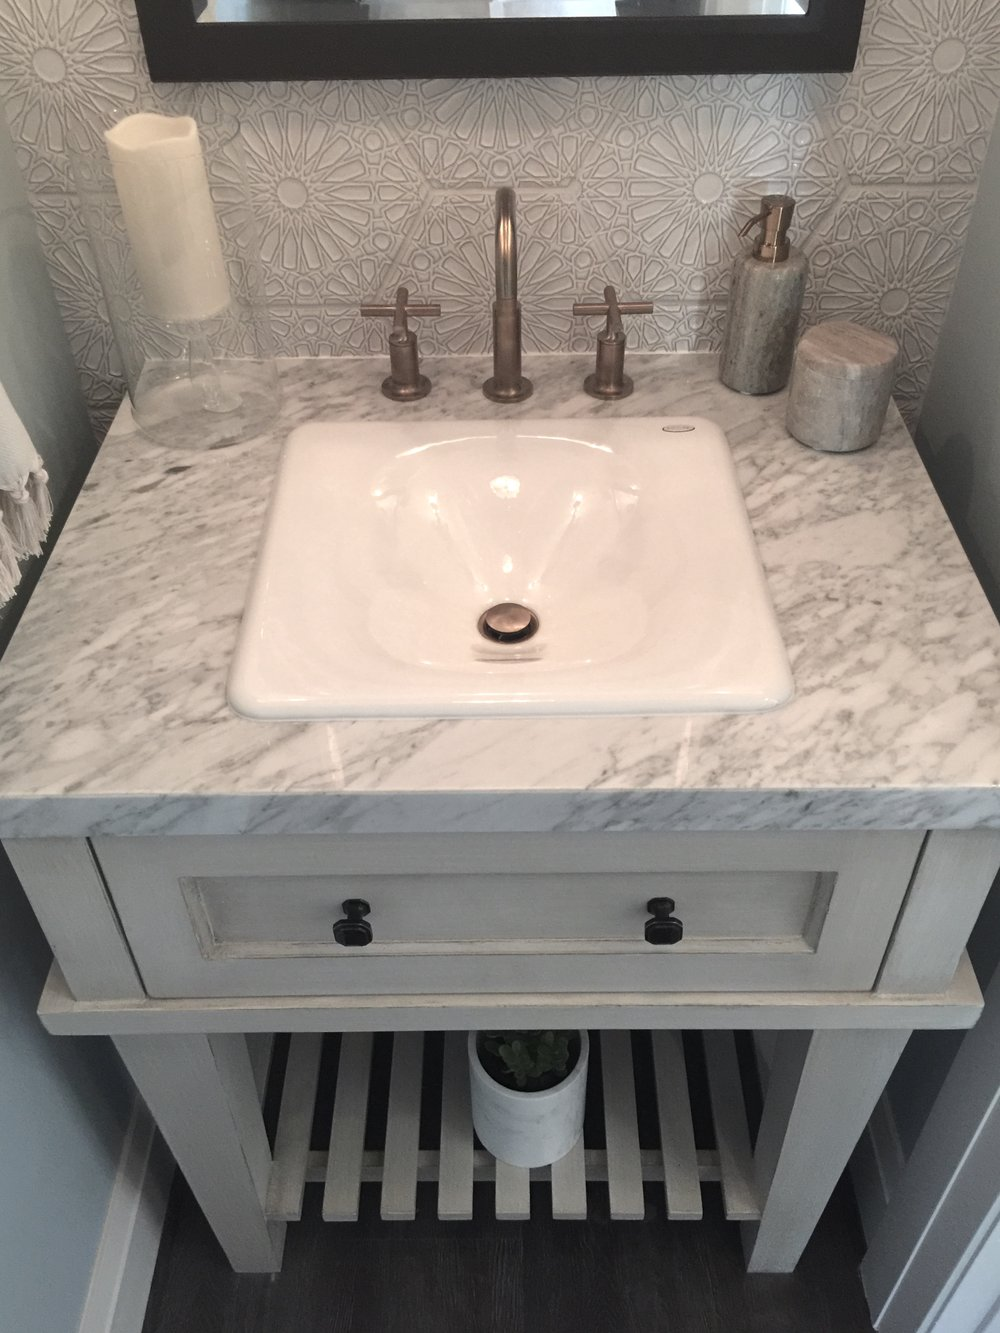 Guest house powder bath vanity - Designer Latrice Gentry-Brooks